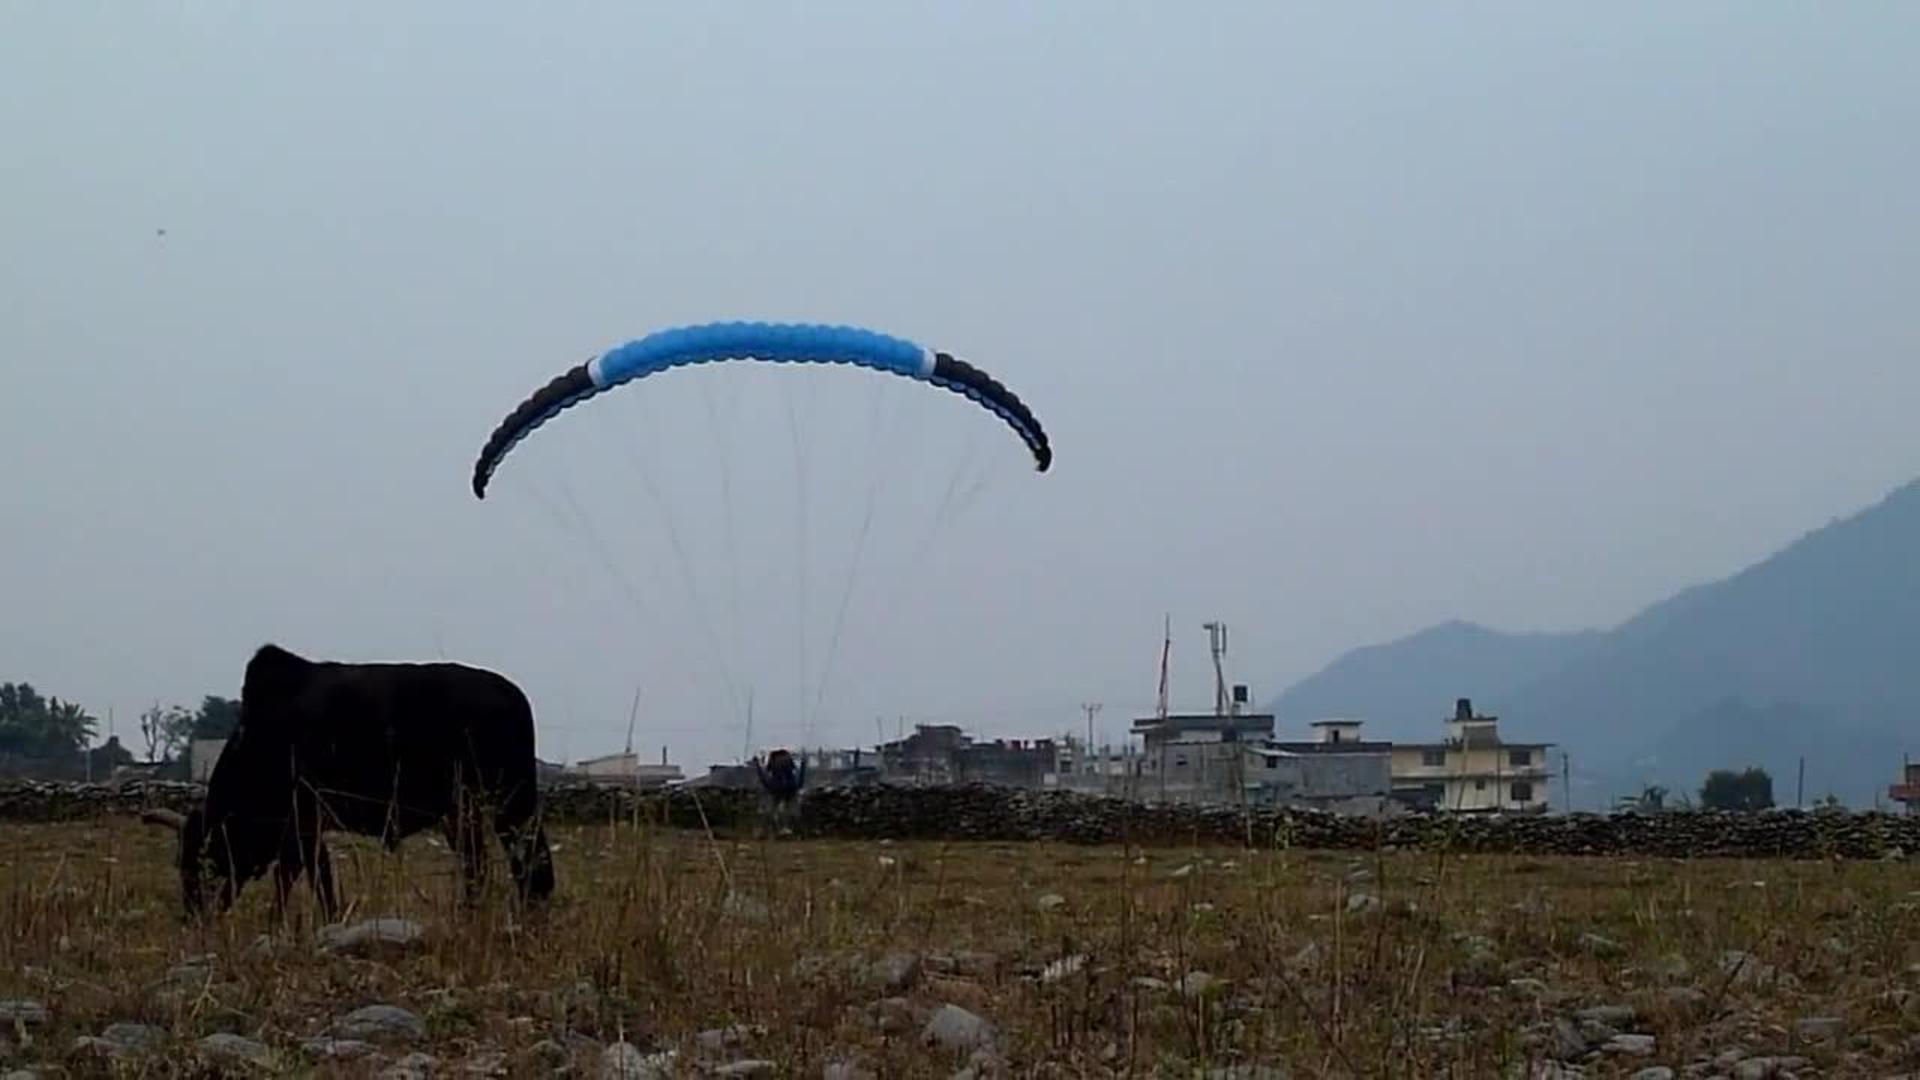 Paraglider Has Crash Landing | Jukin Media Inc